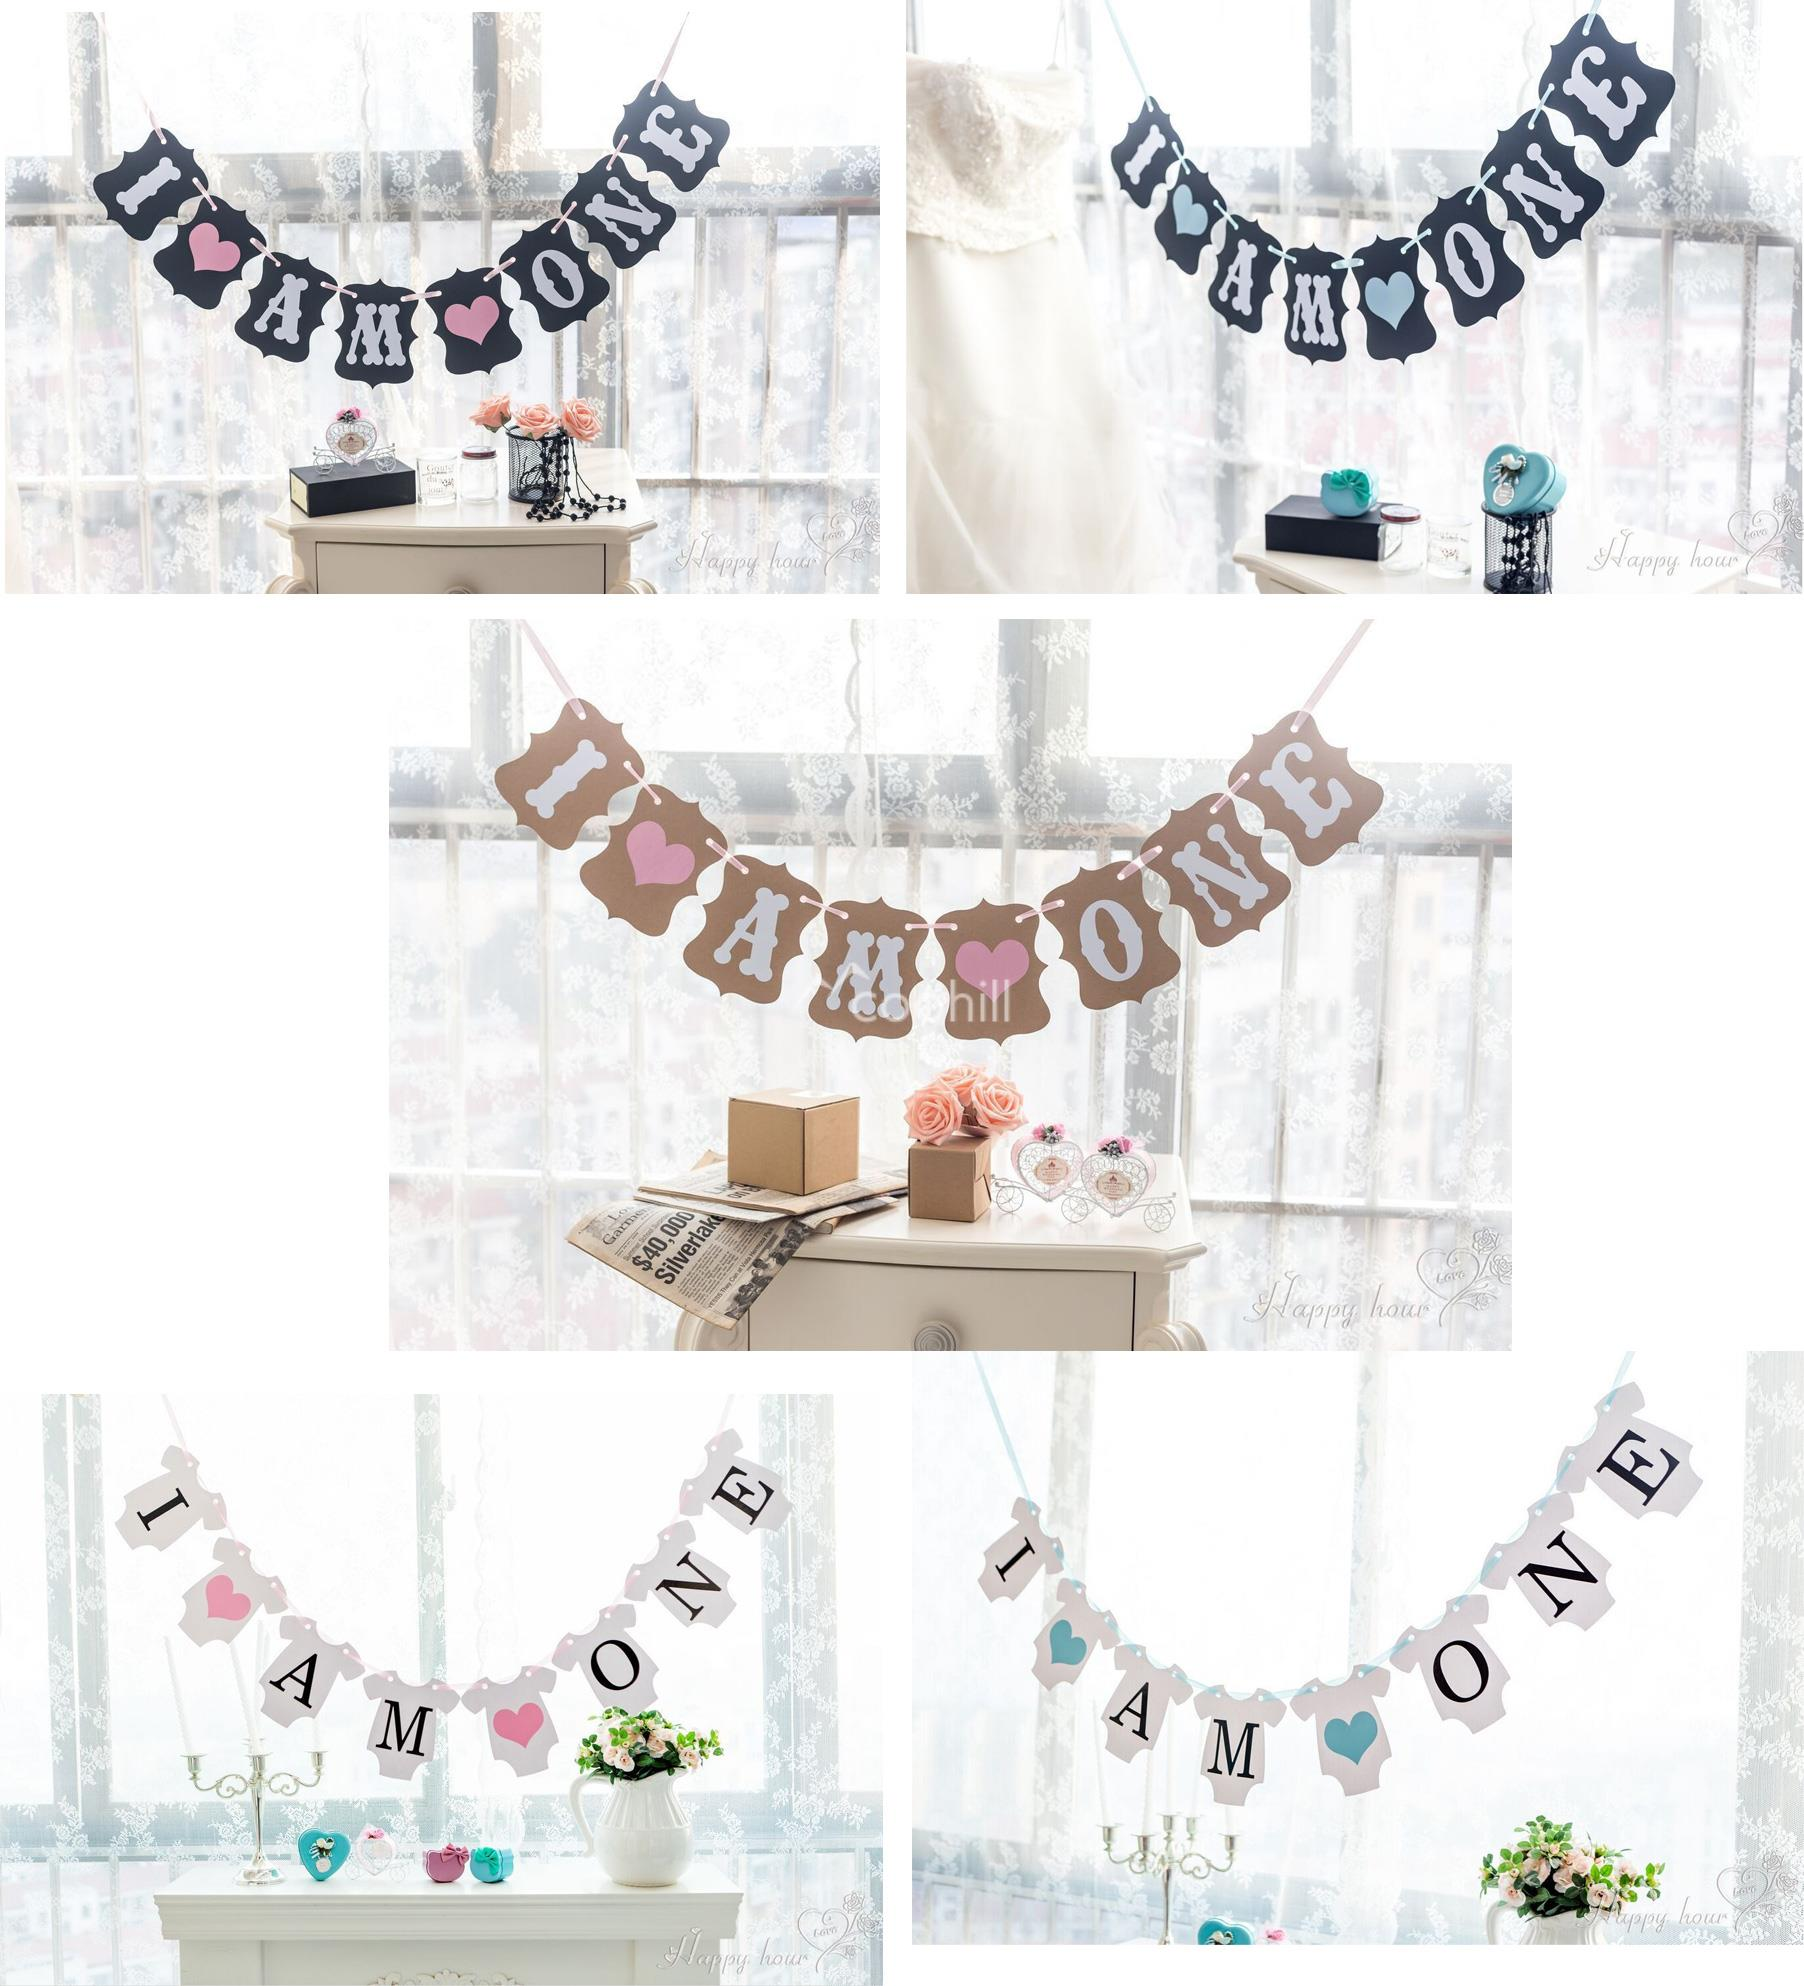 Full Size of Baby Shower:89+ Indulging Baby Shower Banner Picture Inspirations Baby Shower Banner I Am One Baby Shower Banner Baby Boy 1st Birthday Party Garland